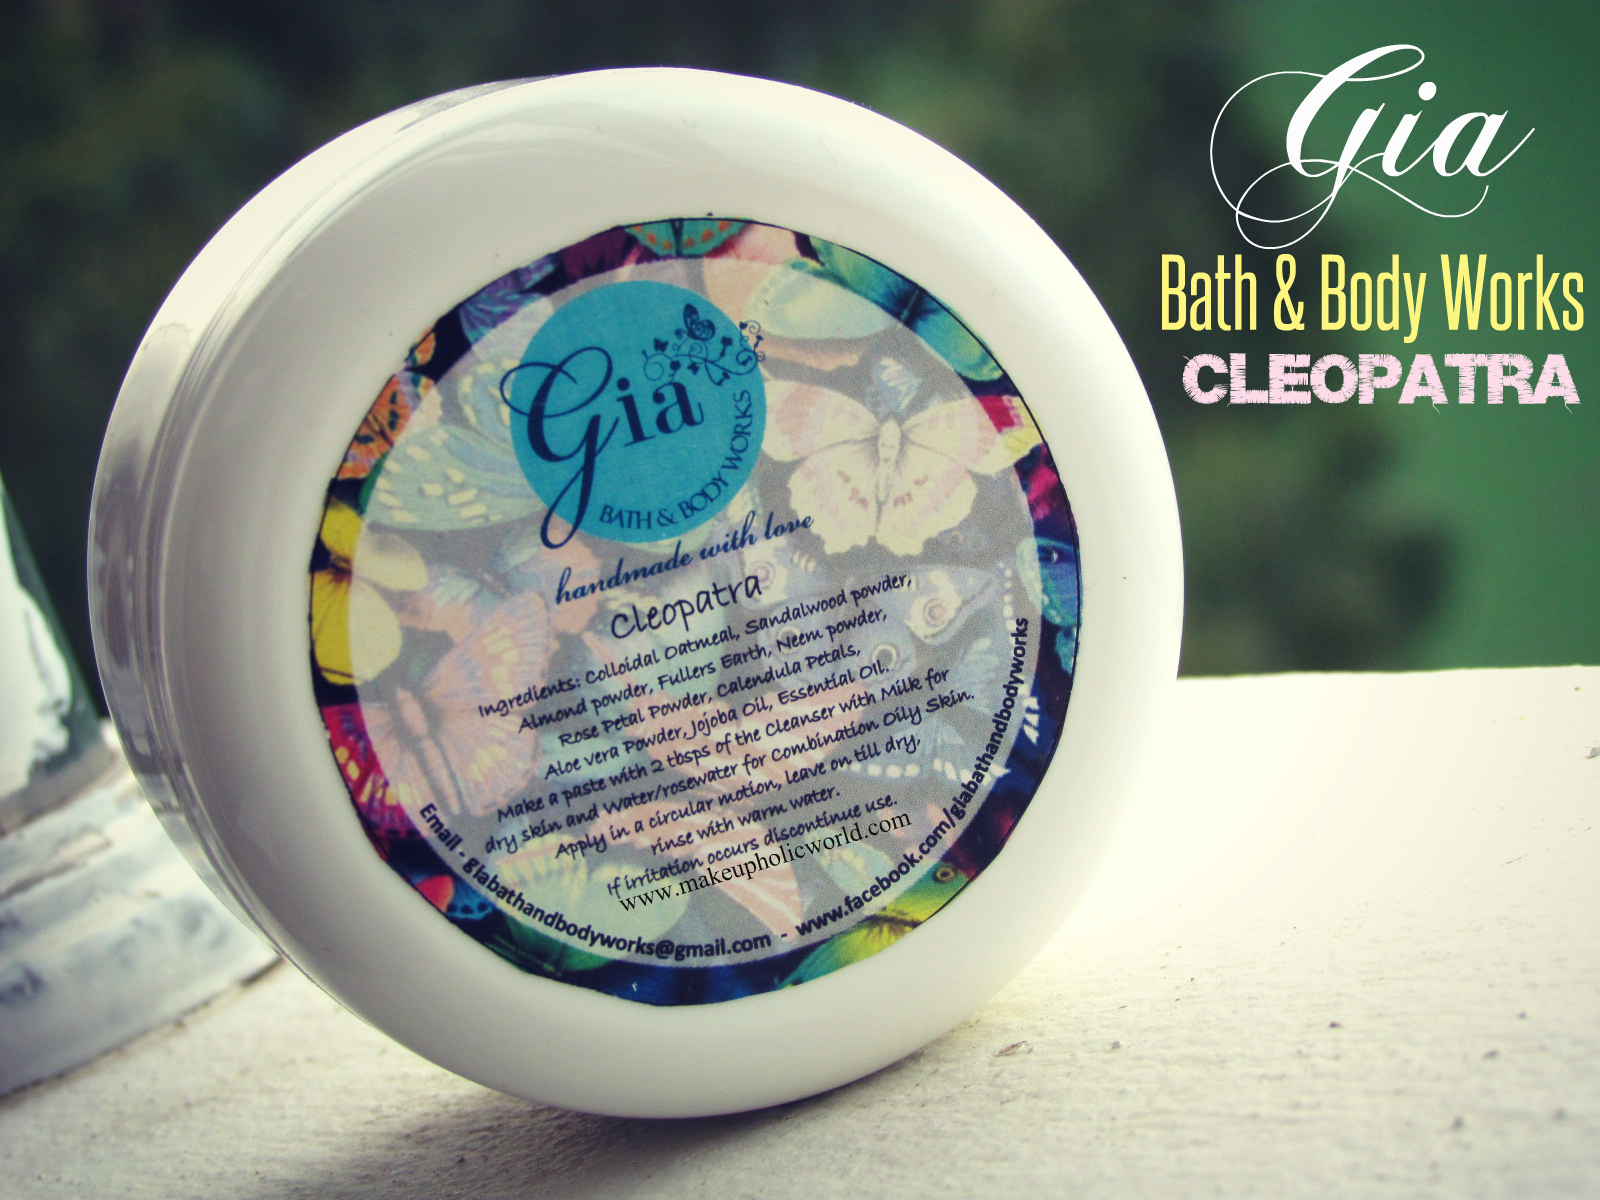 A wonderful product for tan removal – Gia Bath & Body Works – Cleopatra